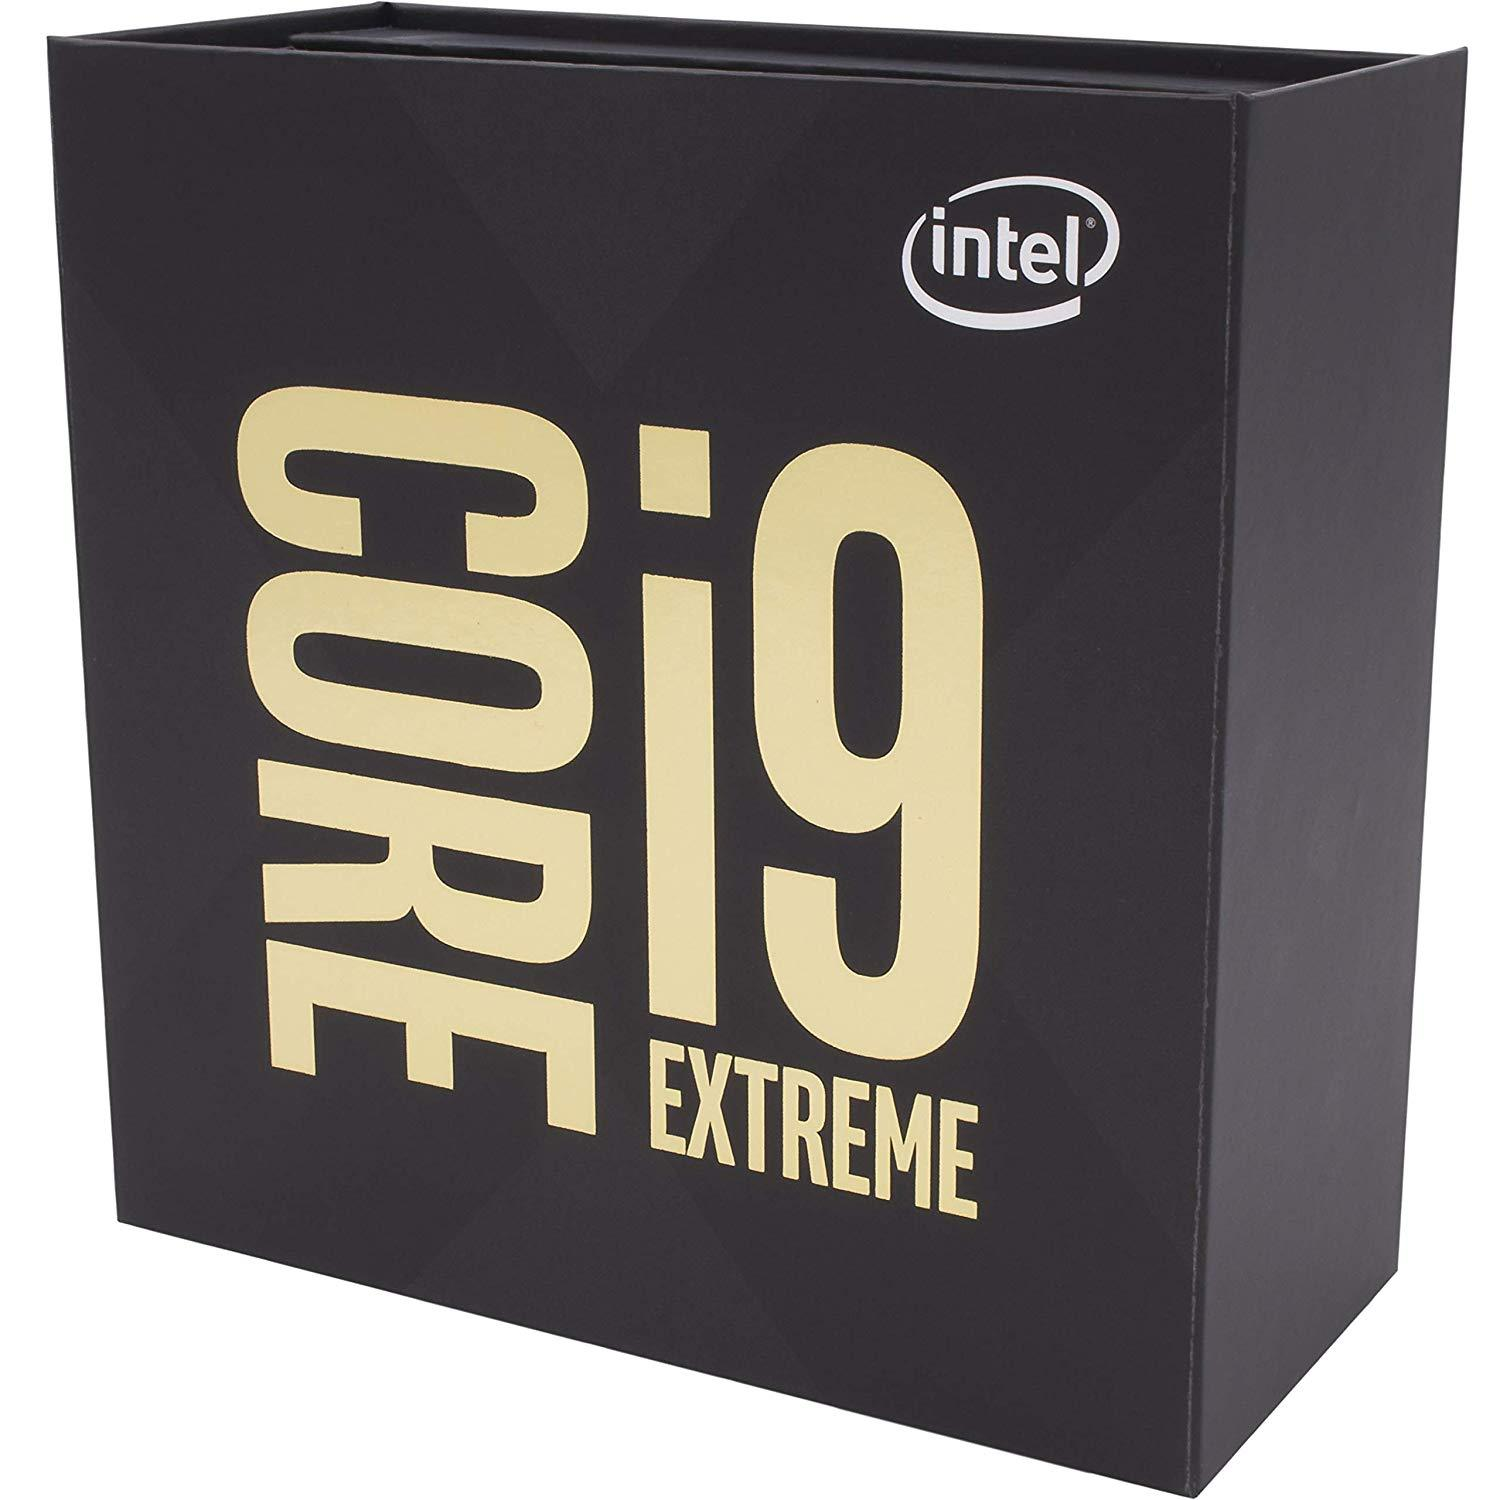 Intel Core i9-9980XE Extreme Edition, 18 Cores, 36 Threads, 4.5GHz LGA2066 CPU